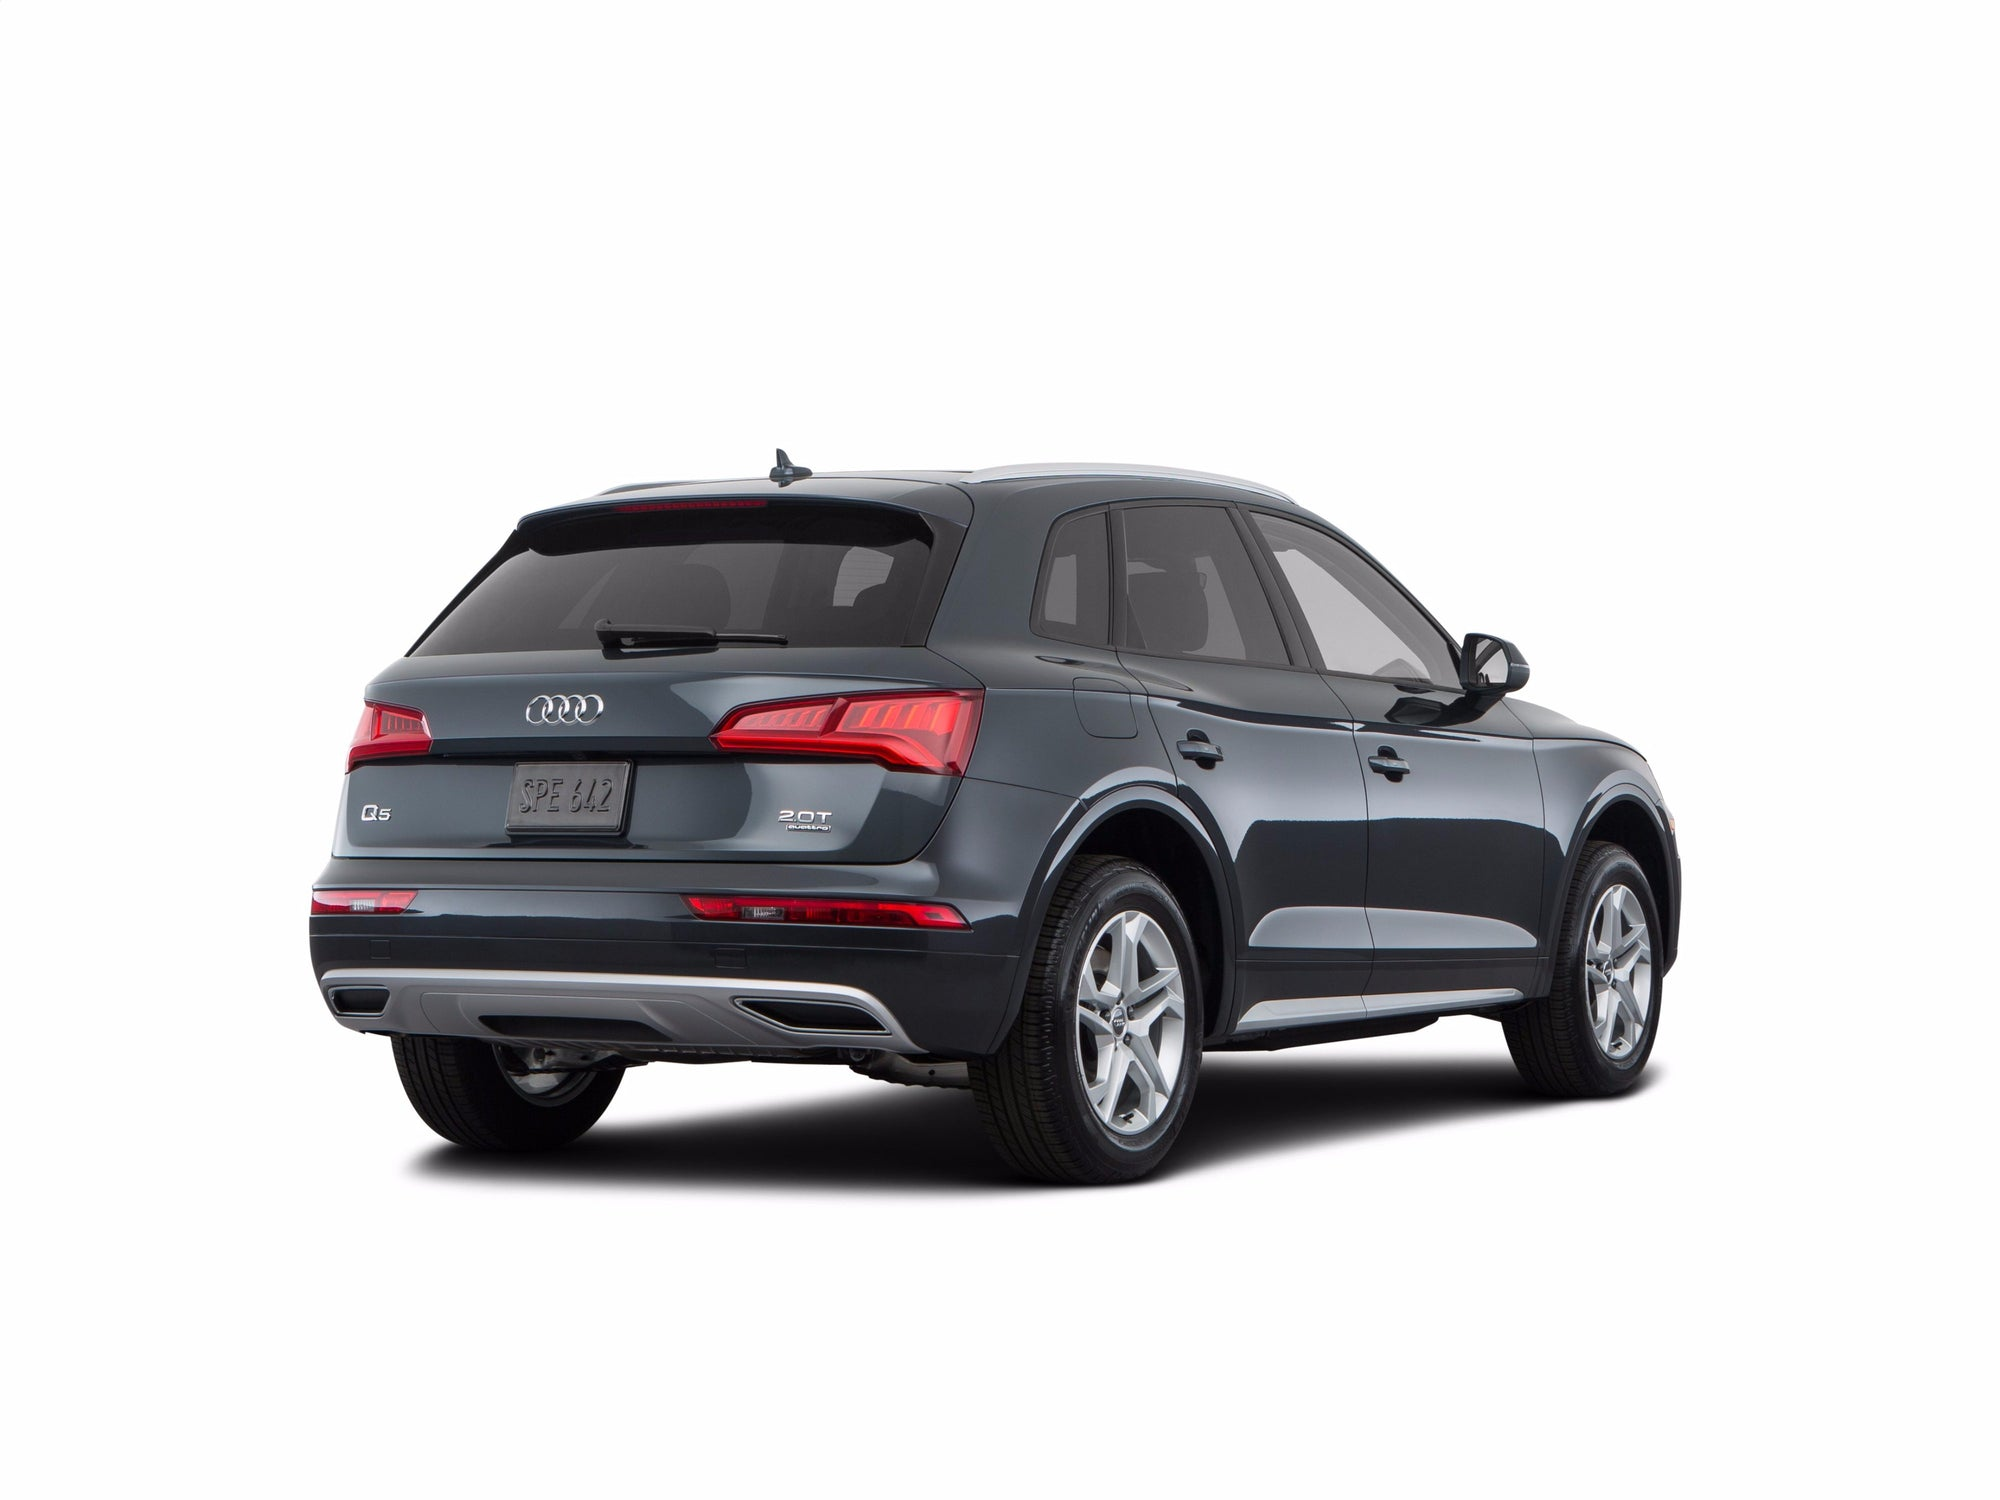 2014 Audi Q5 Trailer Wiring Harness Electrical Diagram House Q7 Hitch Made To Be Hidden Increase Tow Capacity Rh Stealthhitches Com 2015 Towing